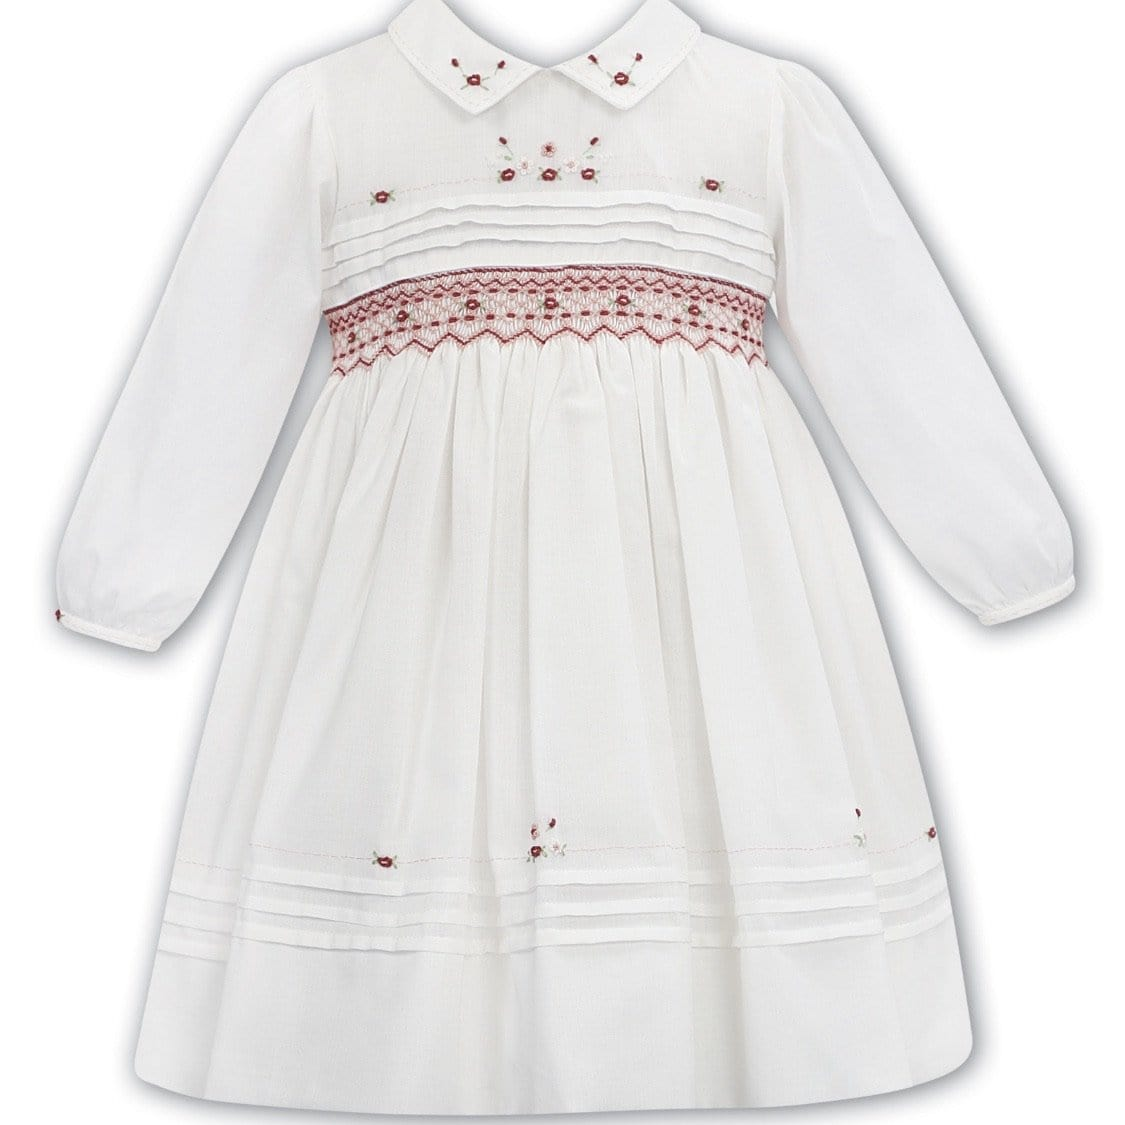 SARAH LOUISE WHITE / RED SMOCKED DRESS WINTER